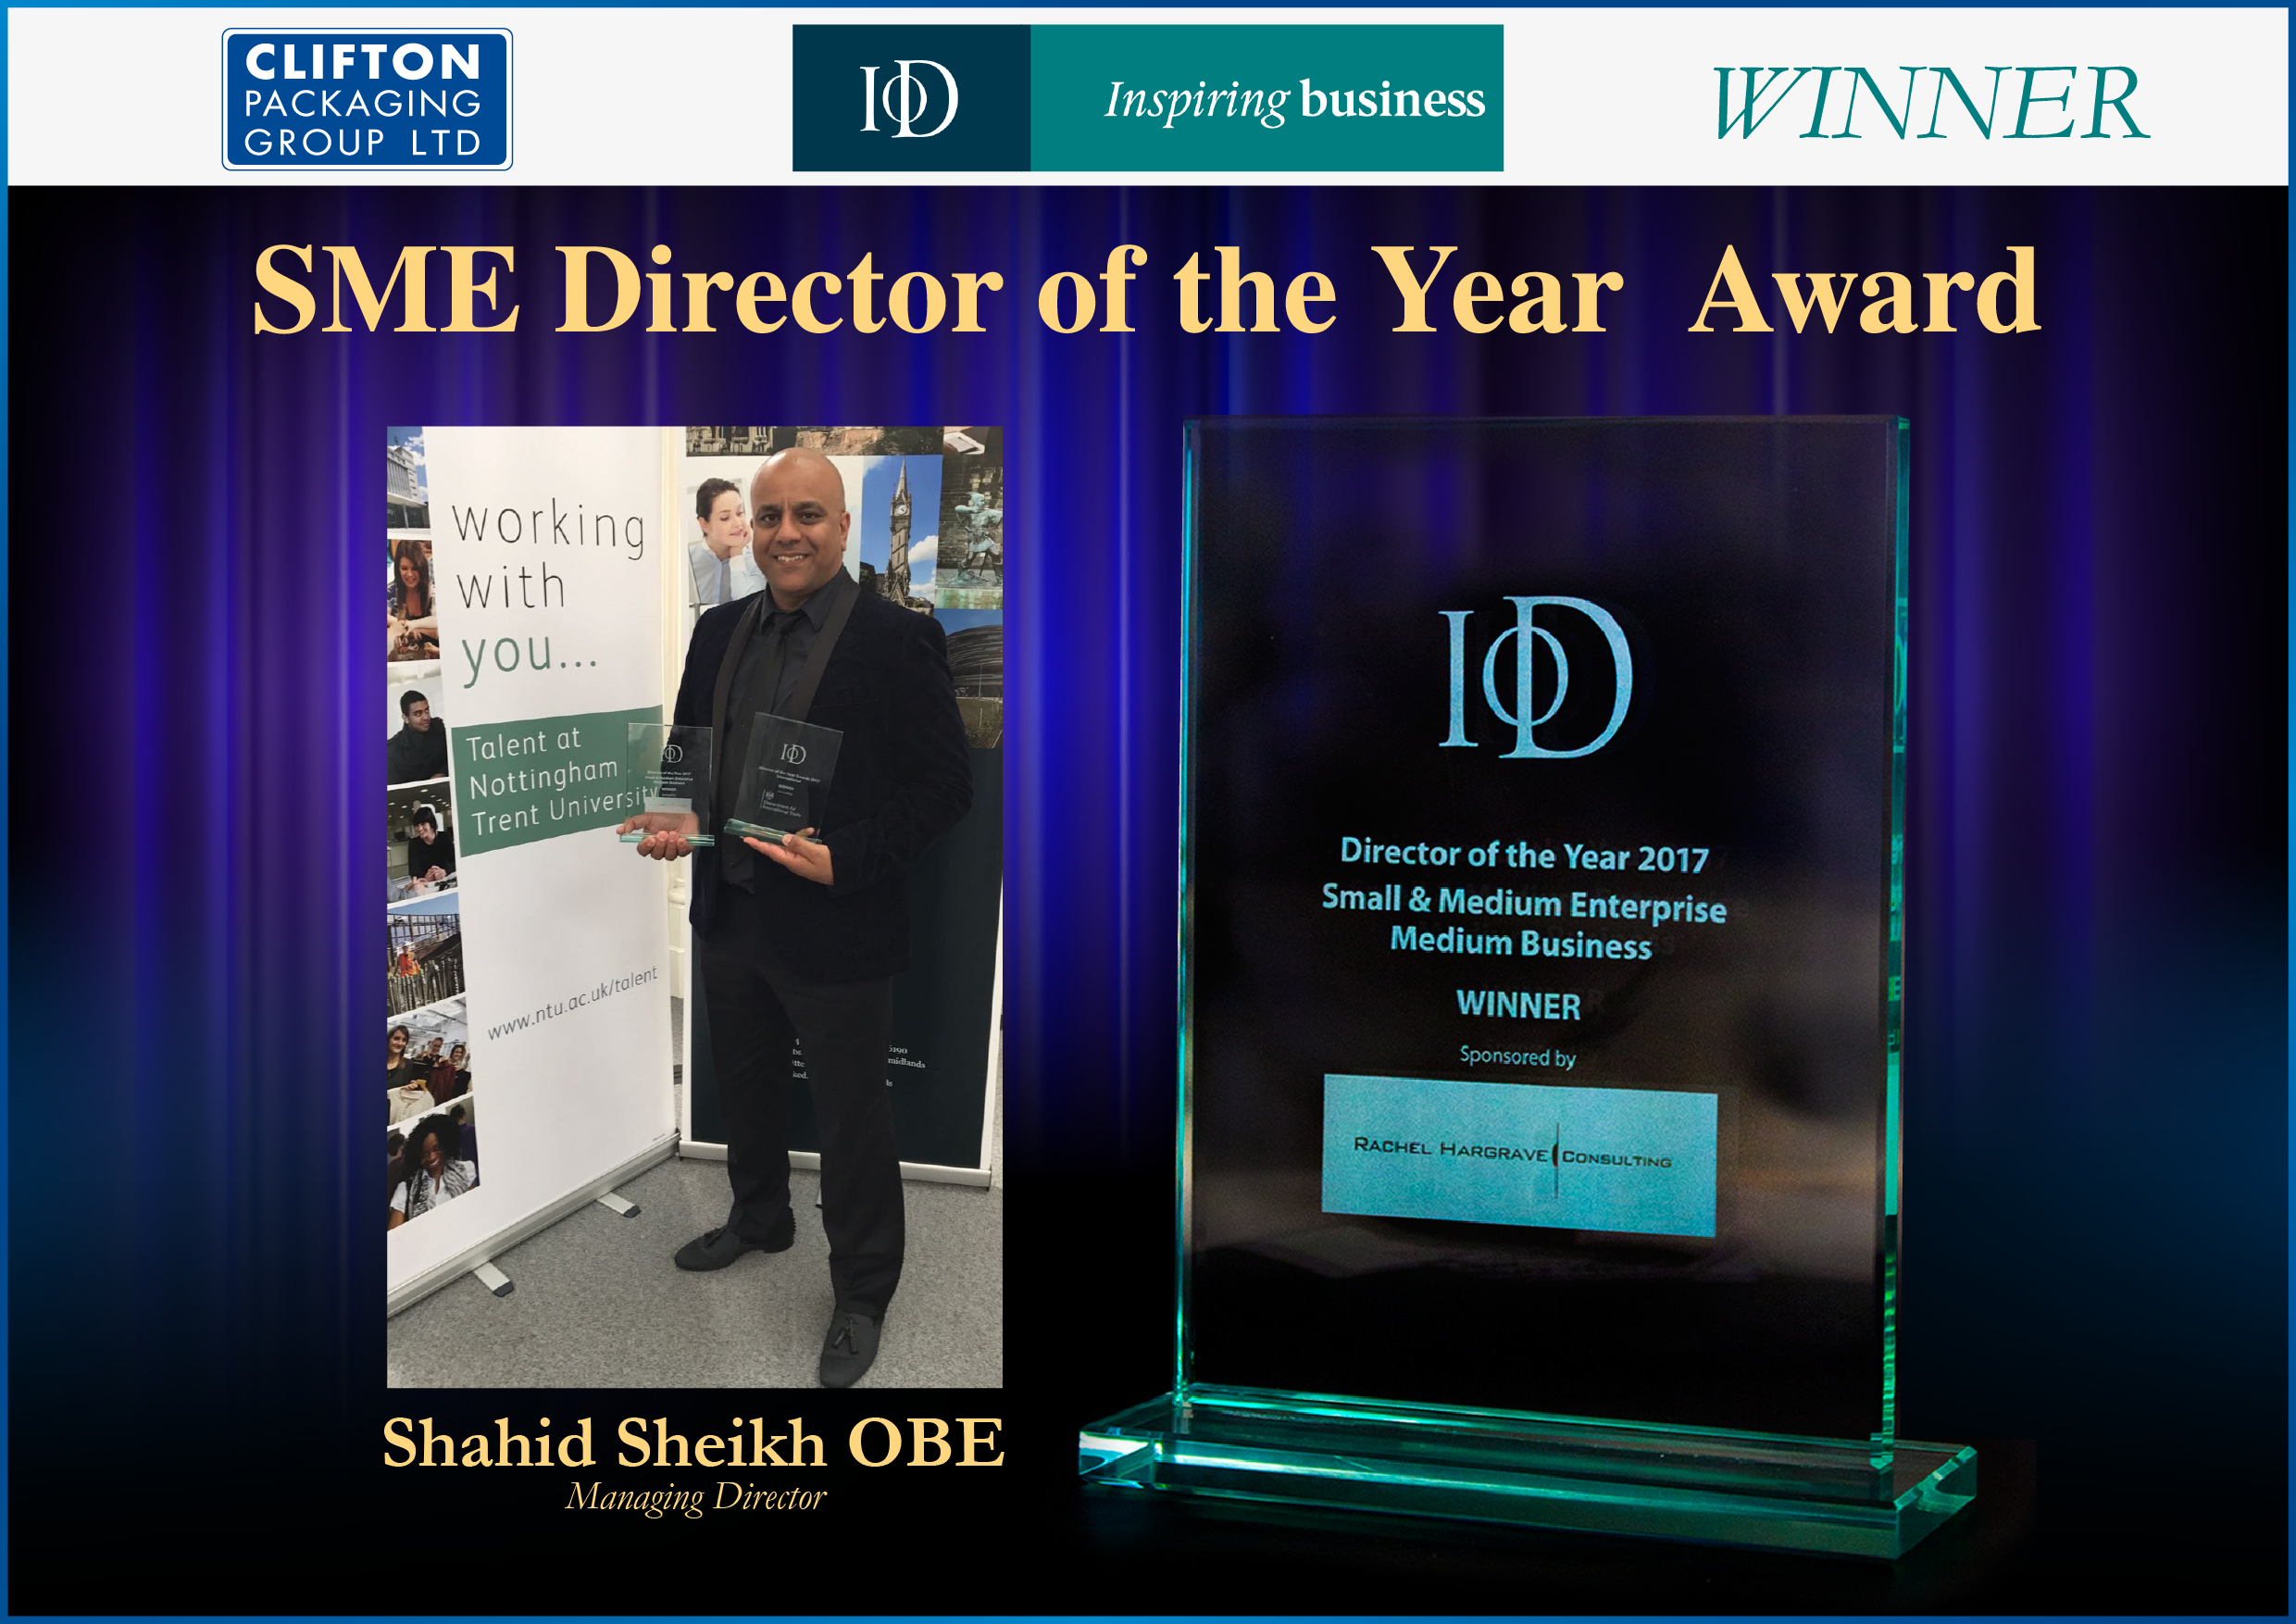 International Trade Director of the Year 2017, SME Director of the Year Award 2017, Clifton Packaging Group ltd. Packaging, Flexible Packaging